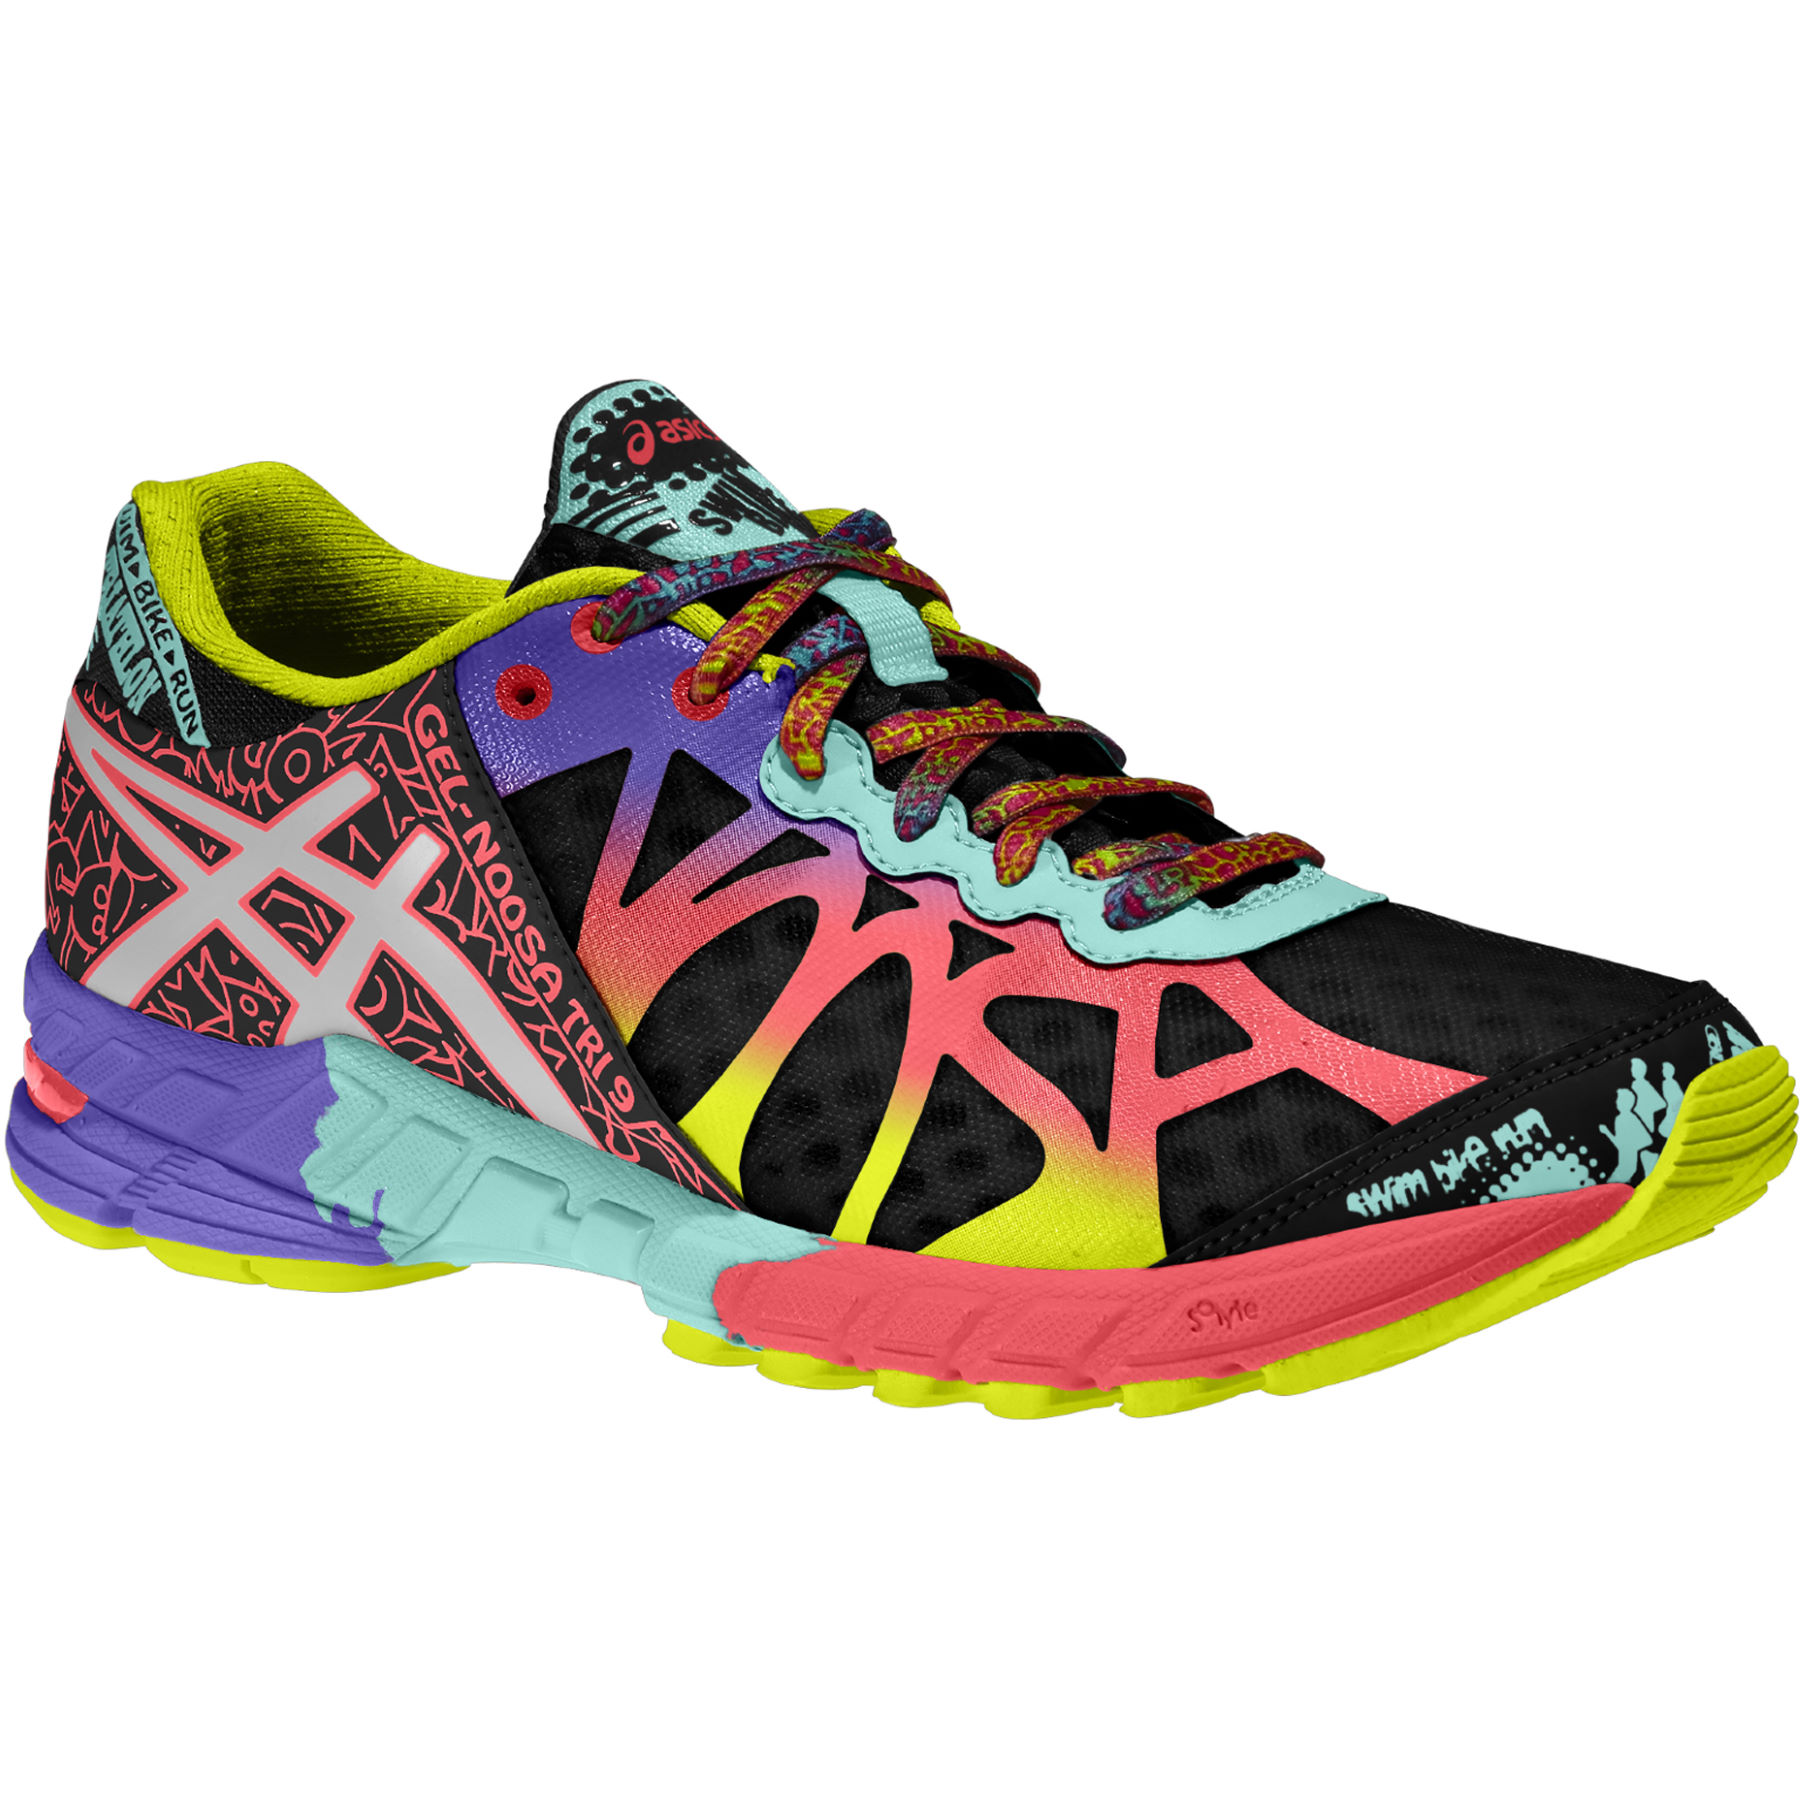 Zapatillas asics running 2014 zapatillas running asics gel - Asics Women S Gel Noosa Tri 9 Shoes Aw14